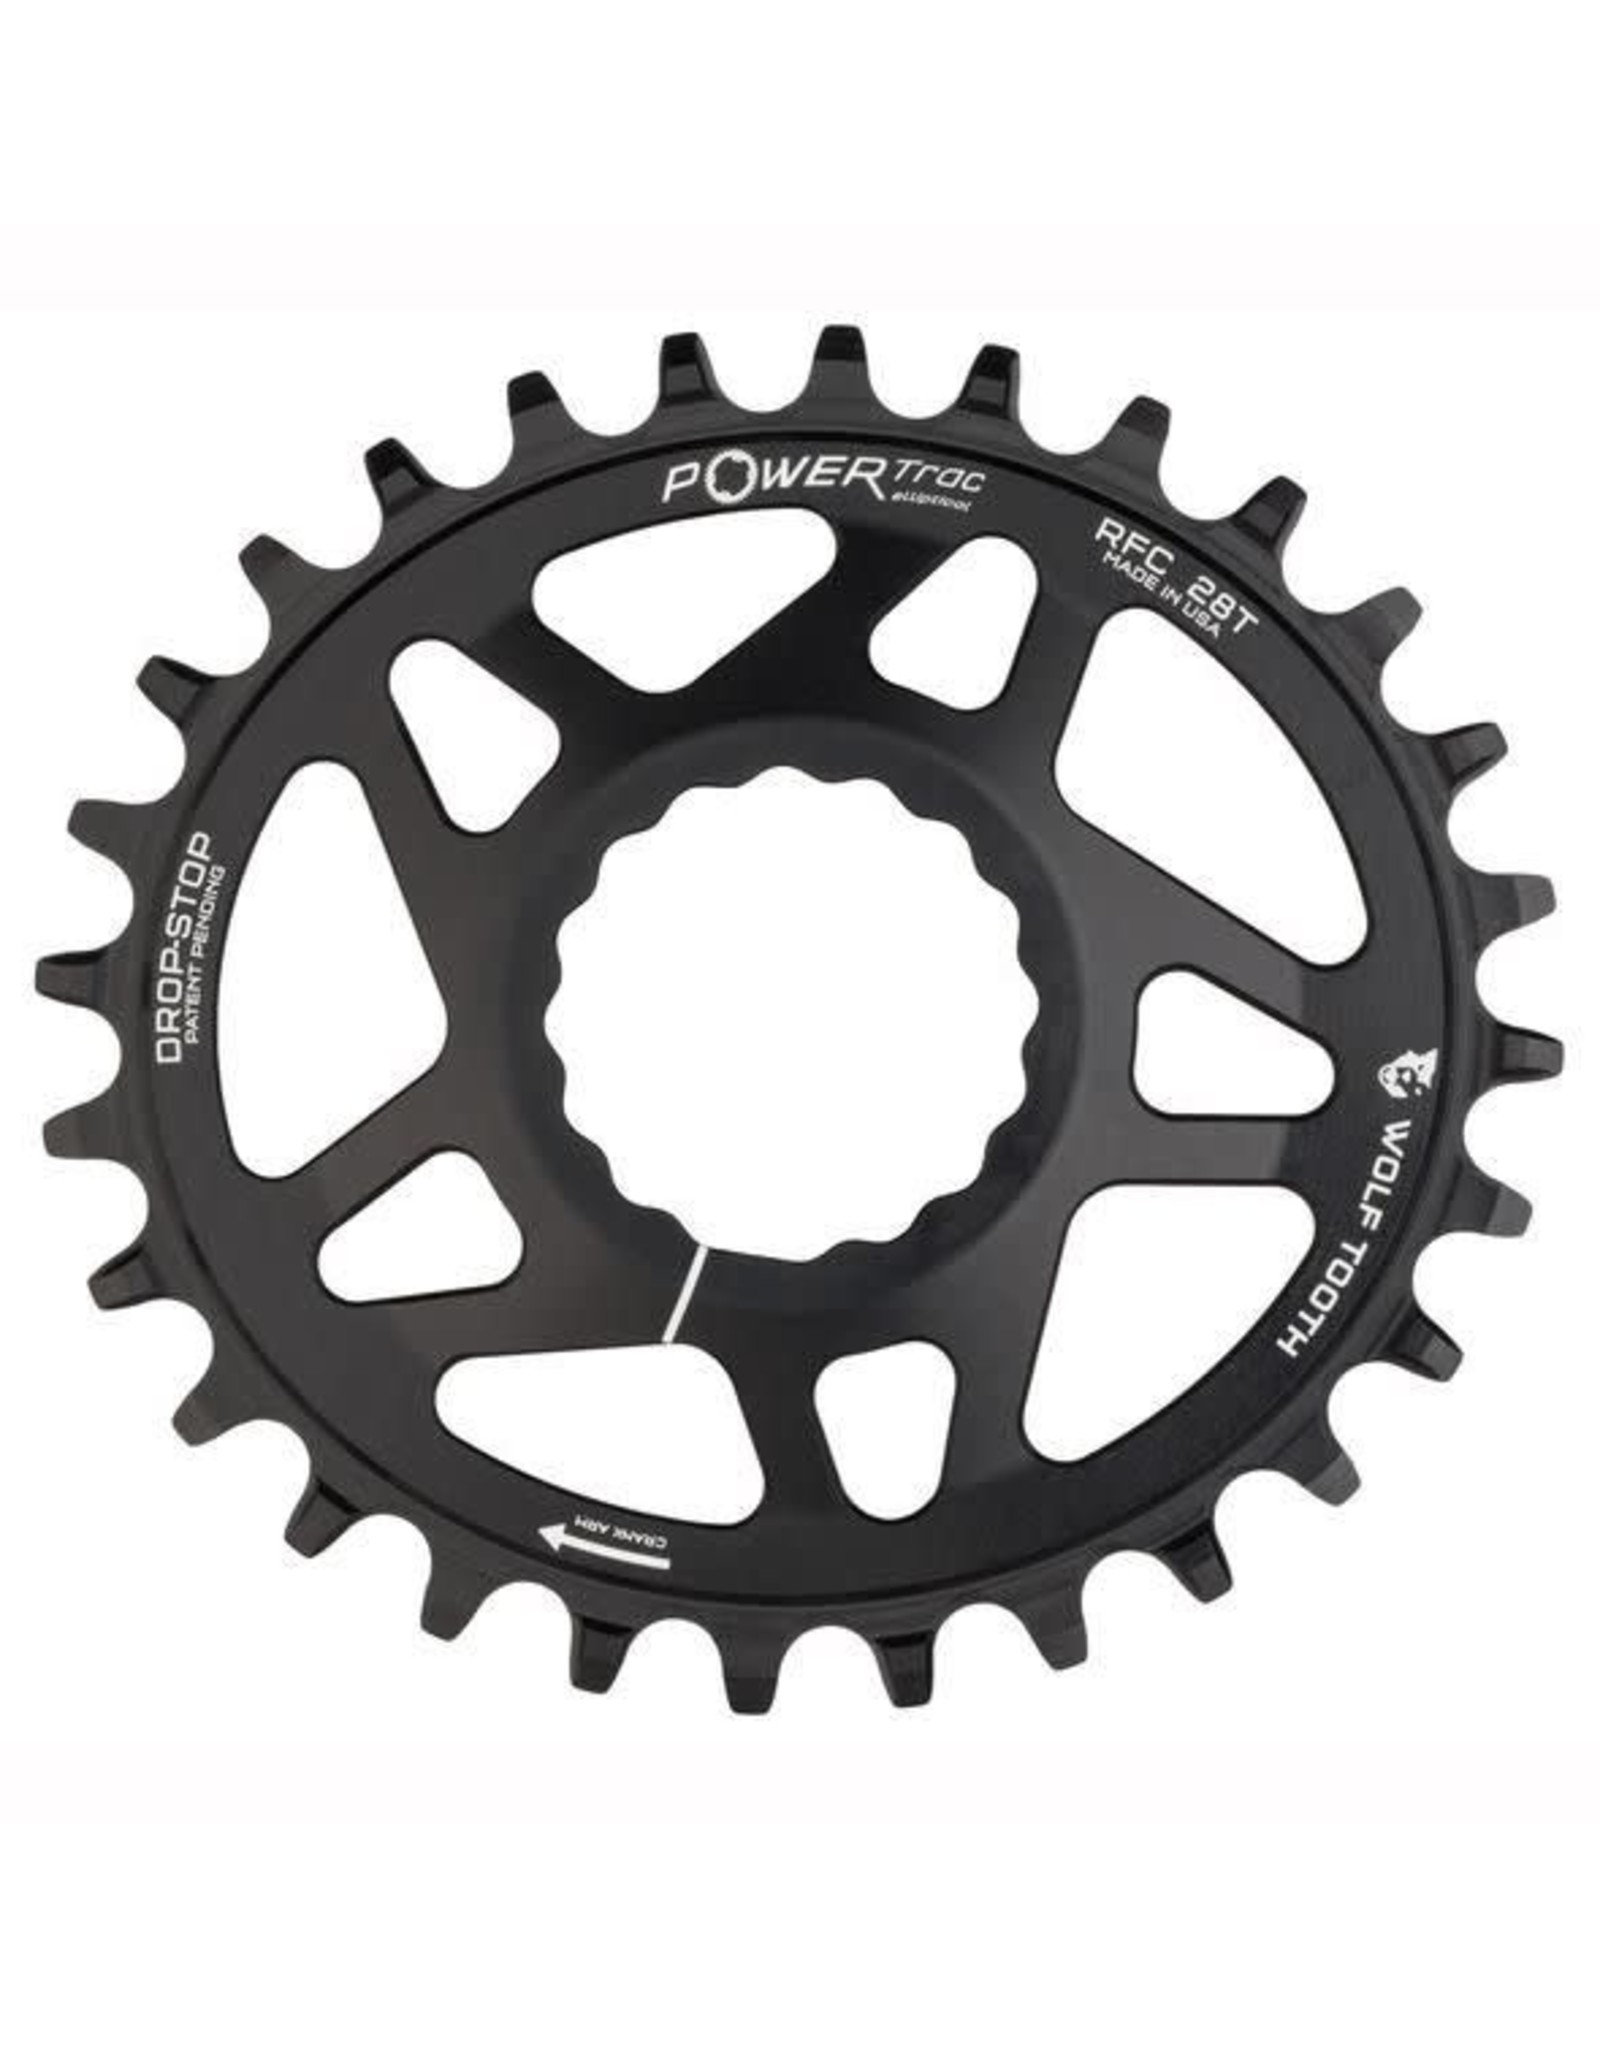 ABSOLUTE BLACK CHAINRING WOLF TOOTH RACEFACE CINCH DIRECT MOUNT ELIPTICAL 32T BOOST BLACK